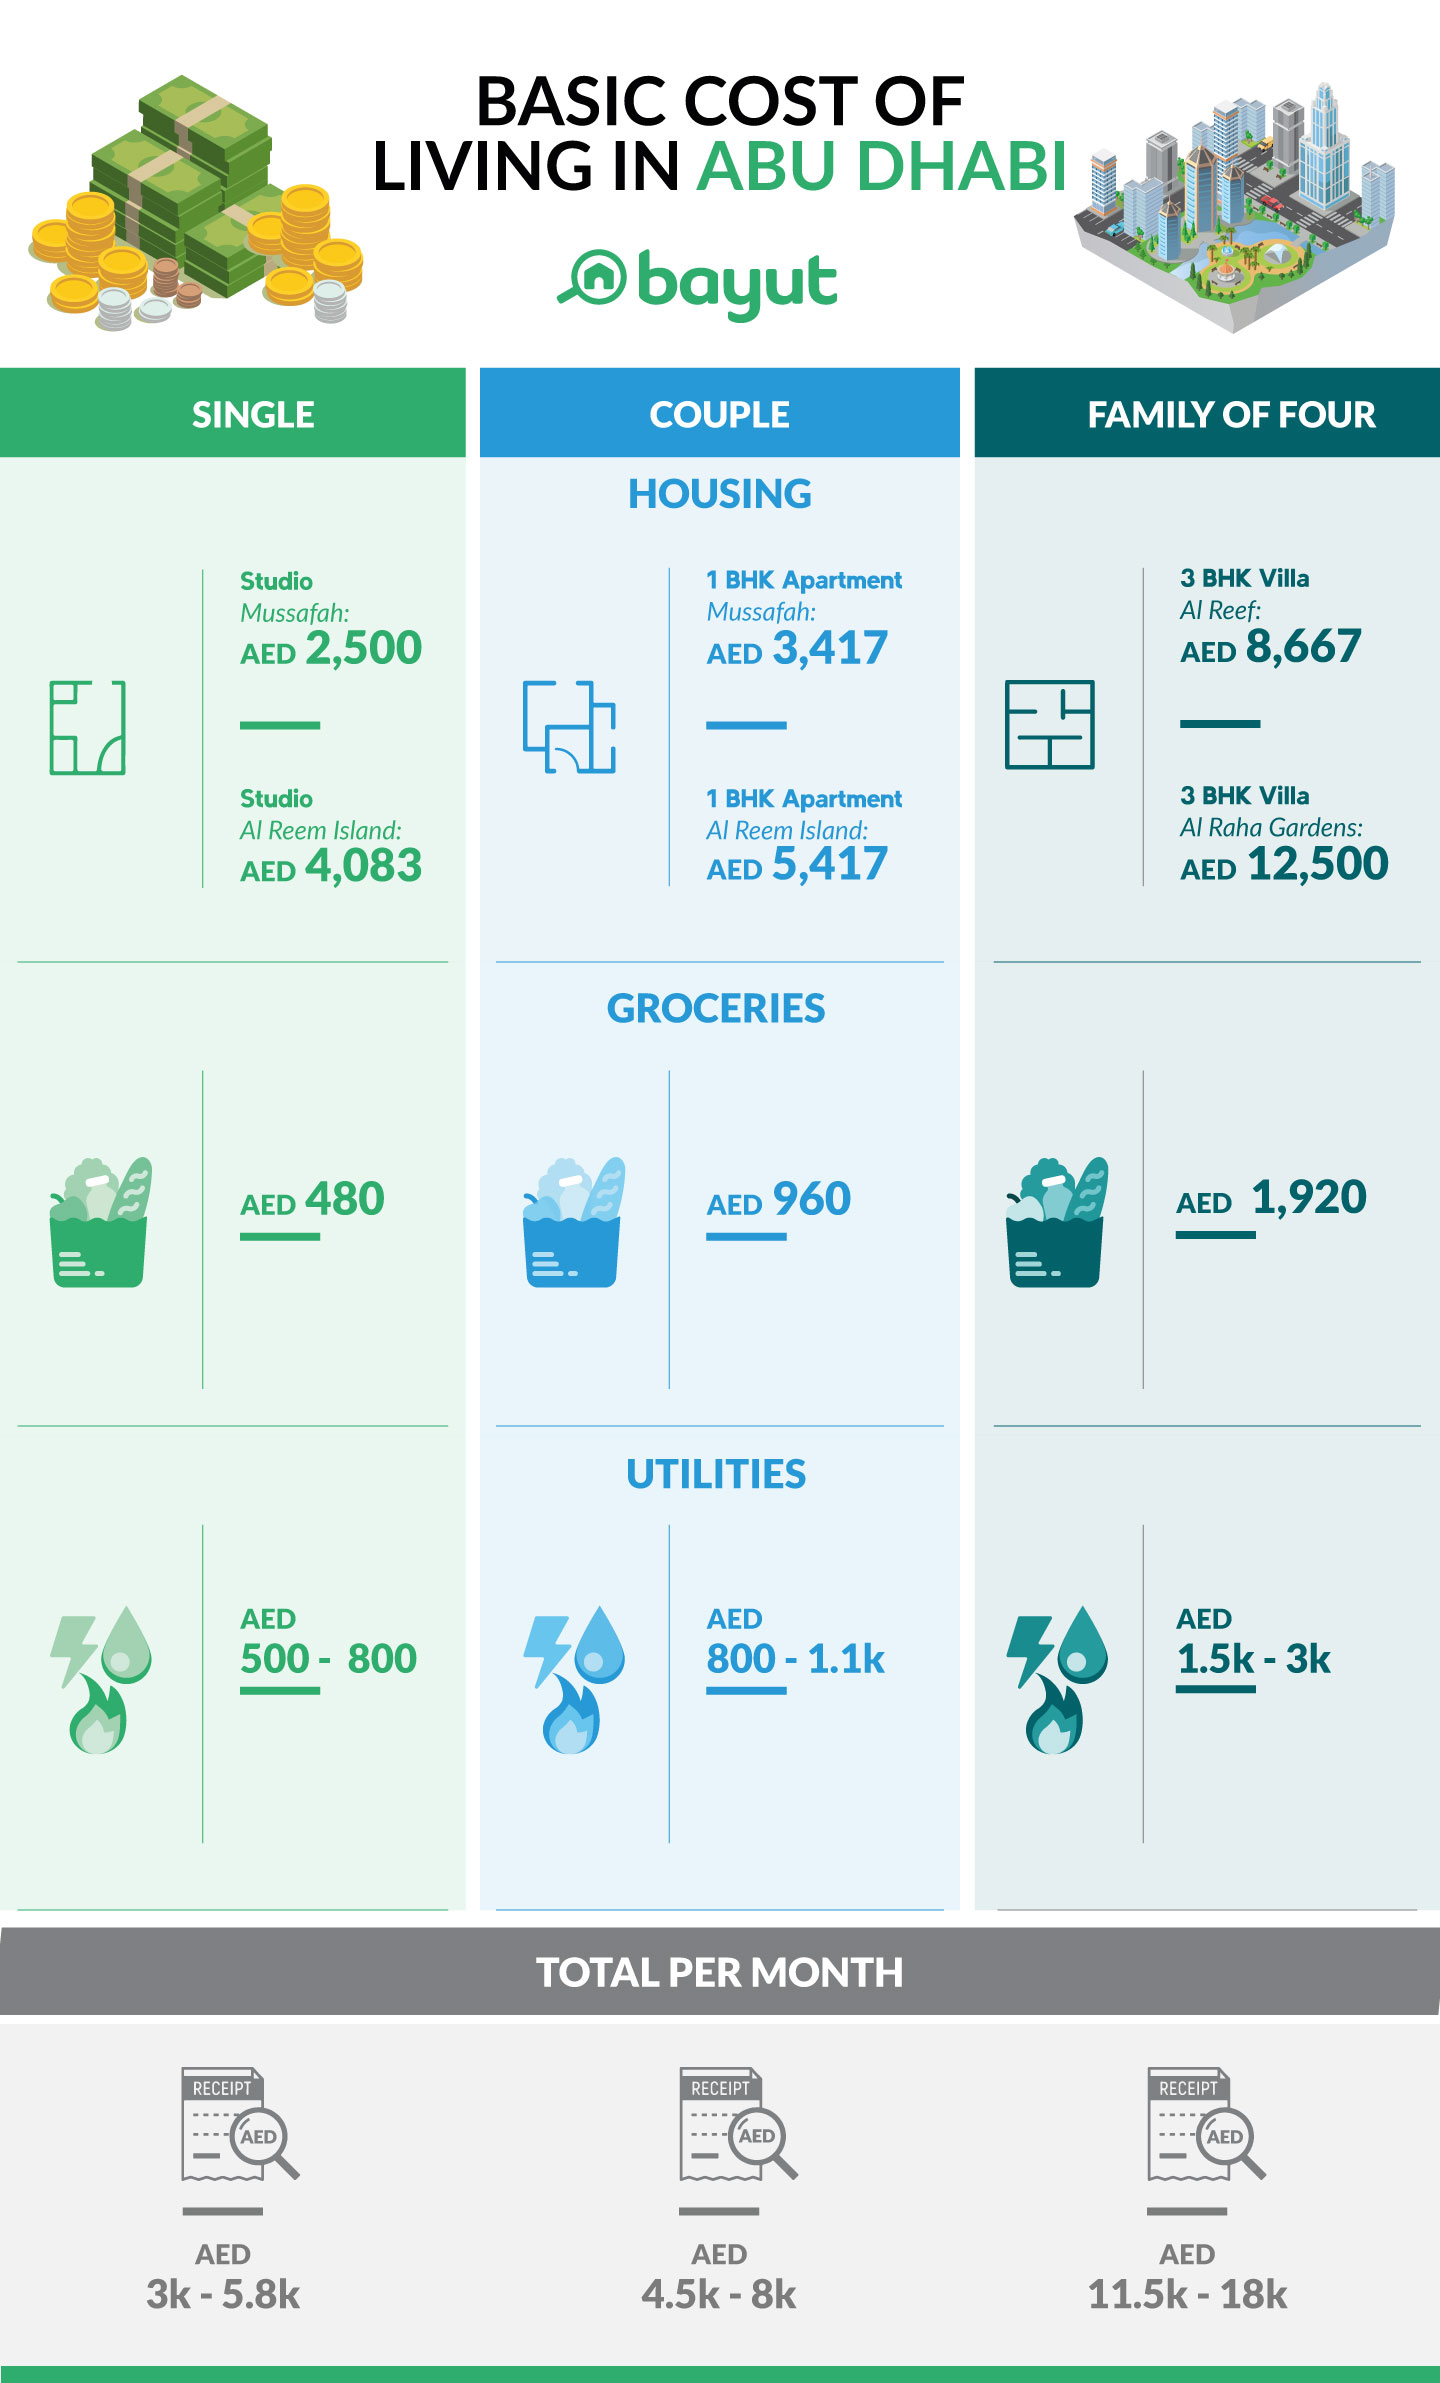 Infographic showing the average cost of living in Abu Dhabi for a single person, couple and family of four